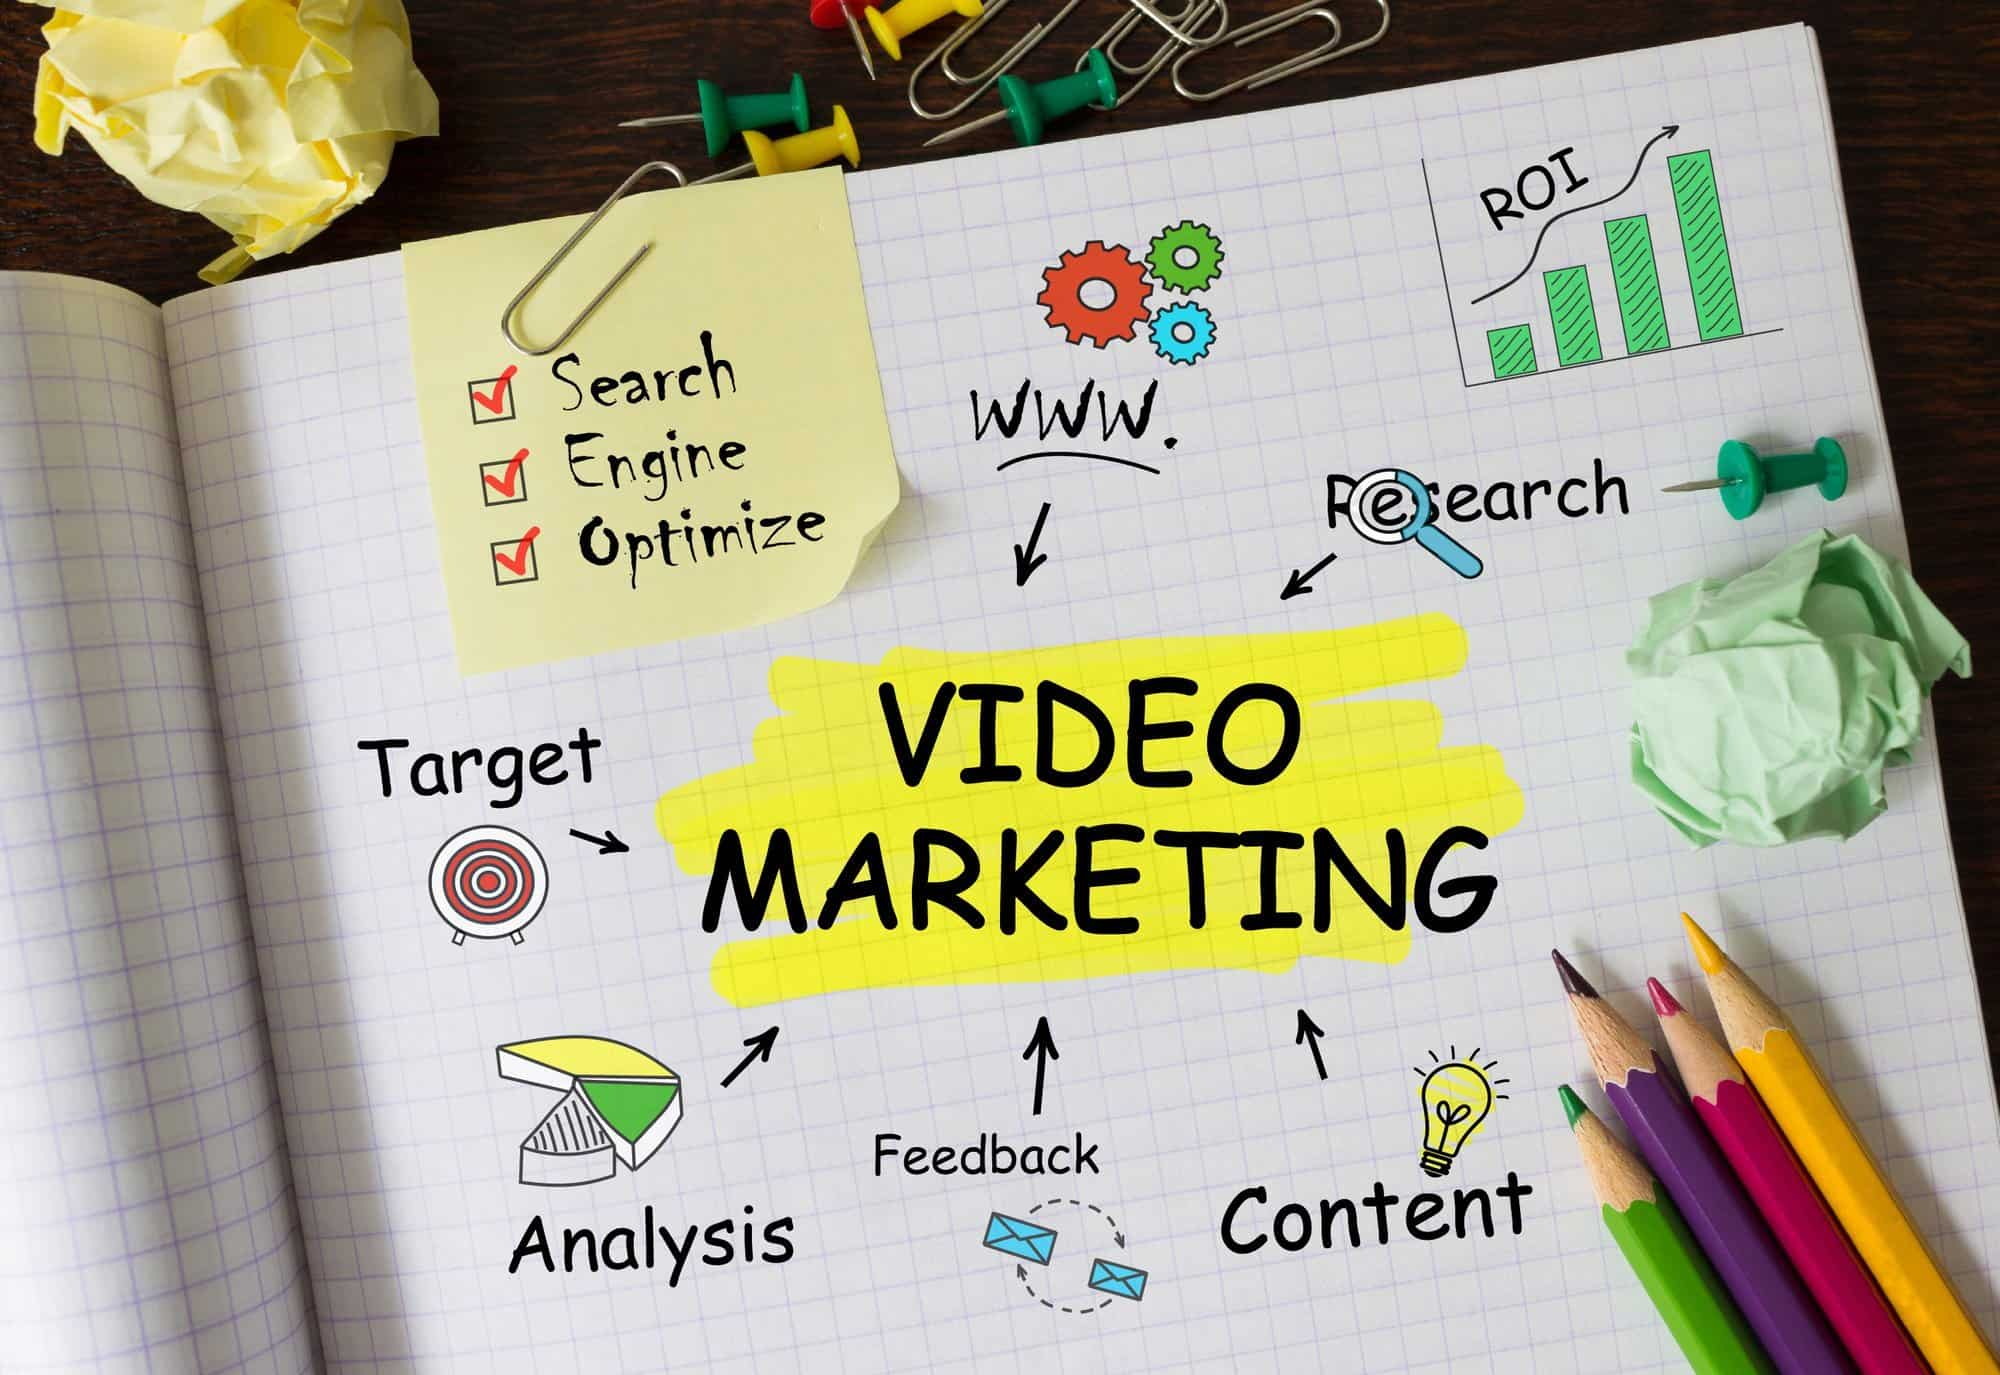 The Top 5 Benefits of Video Marketing for Your Business